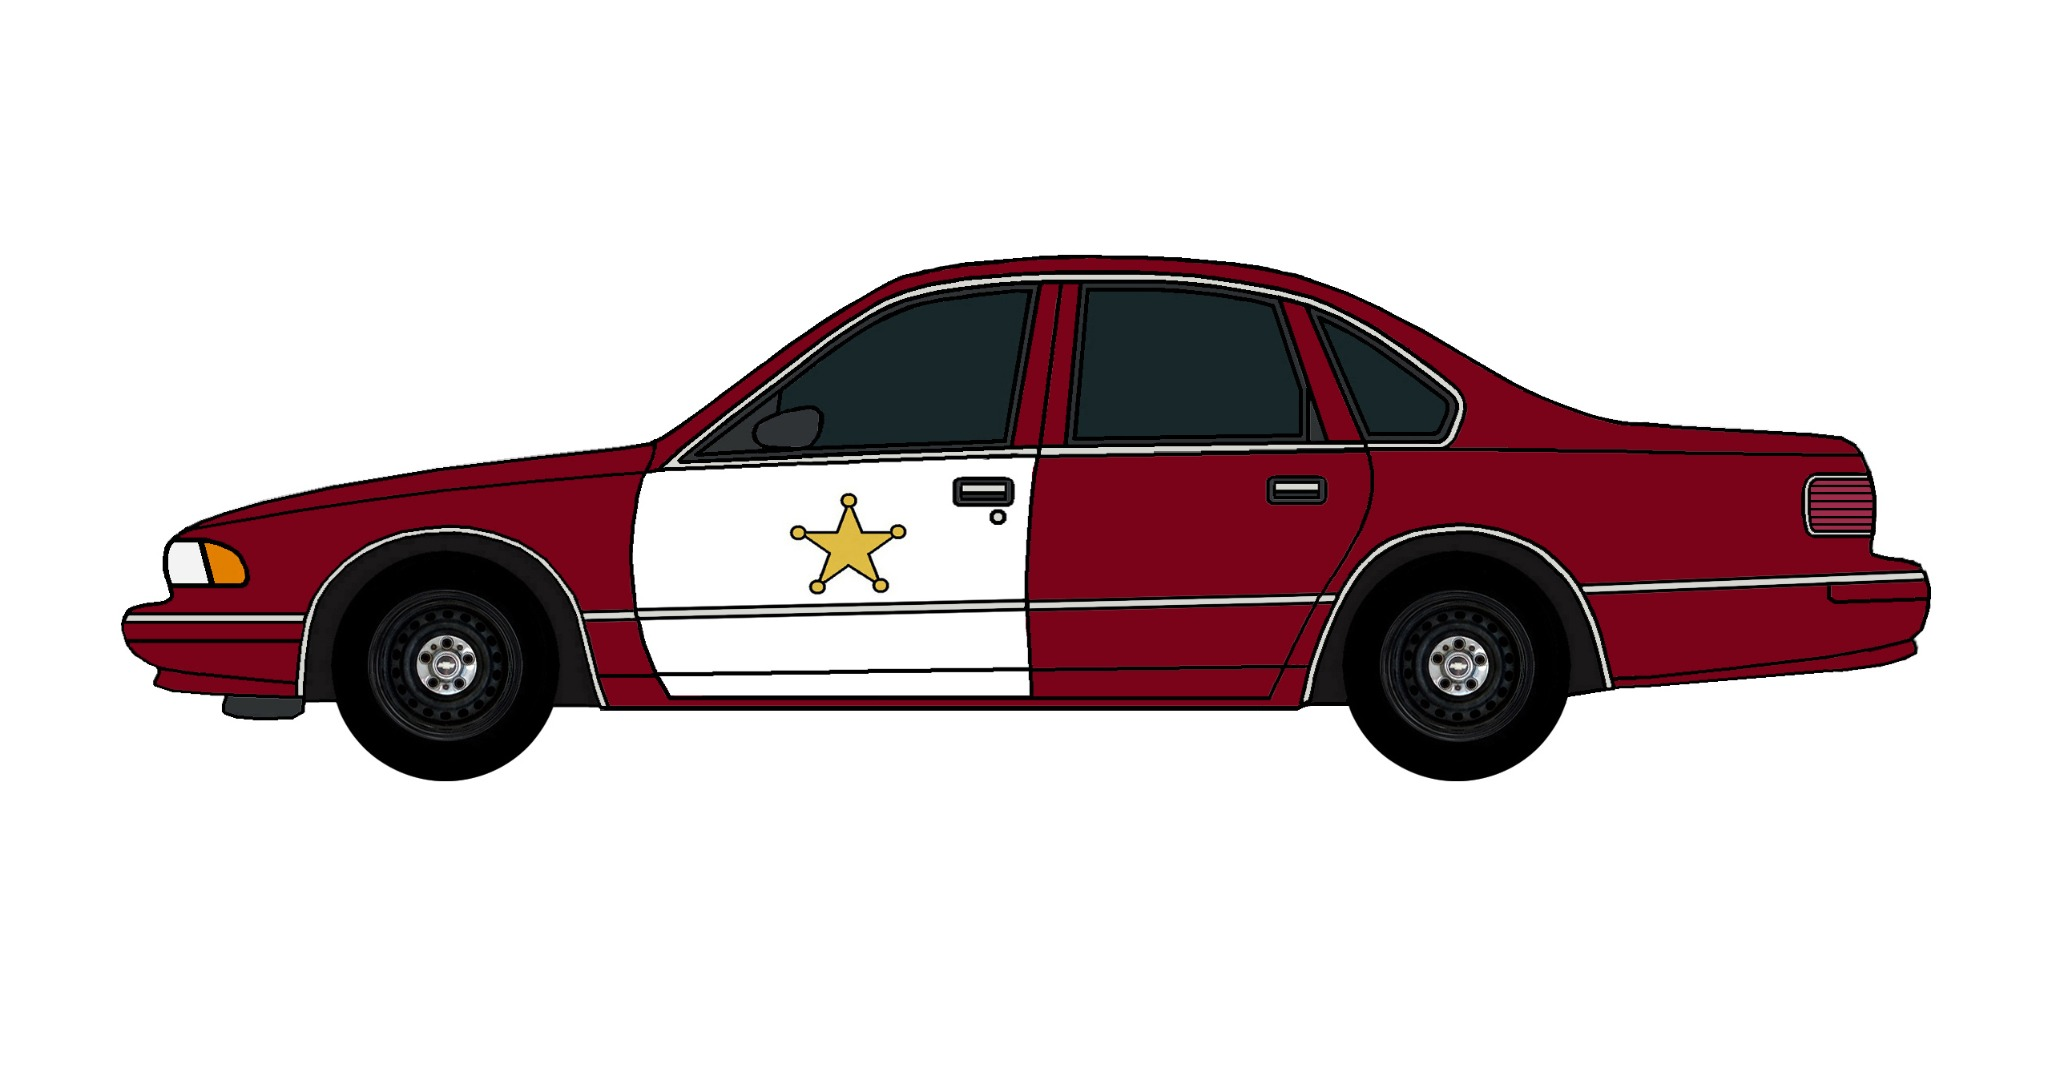 1995 Chevy Caprice Police Car DEEP BURGUNDY